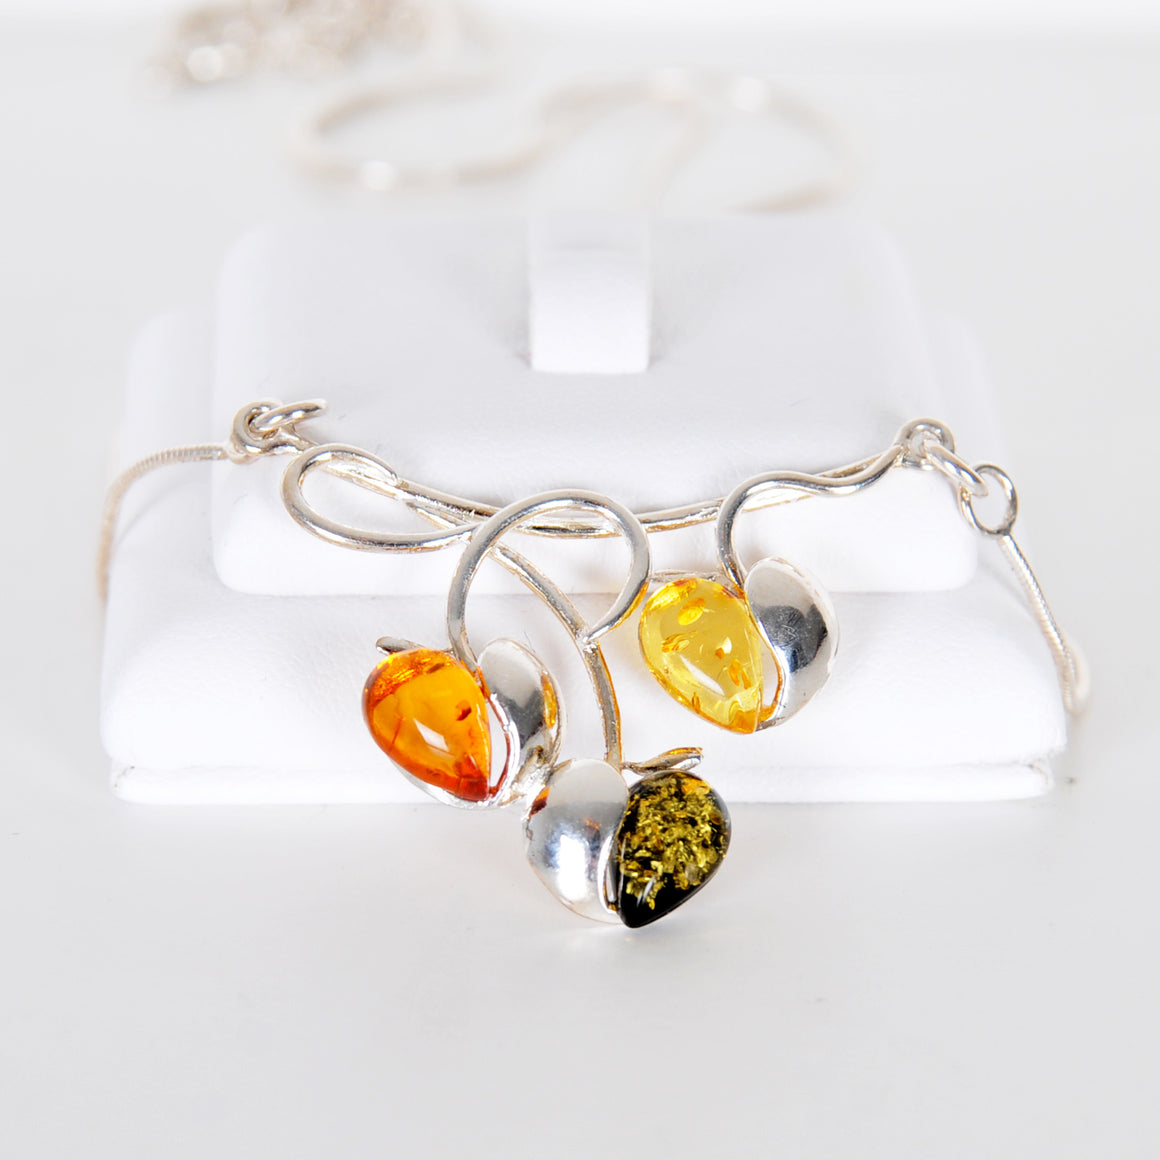 Amber cherries necklace